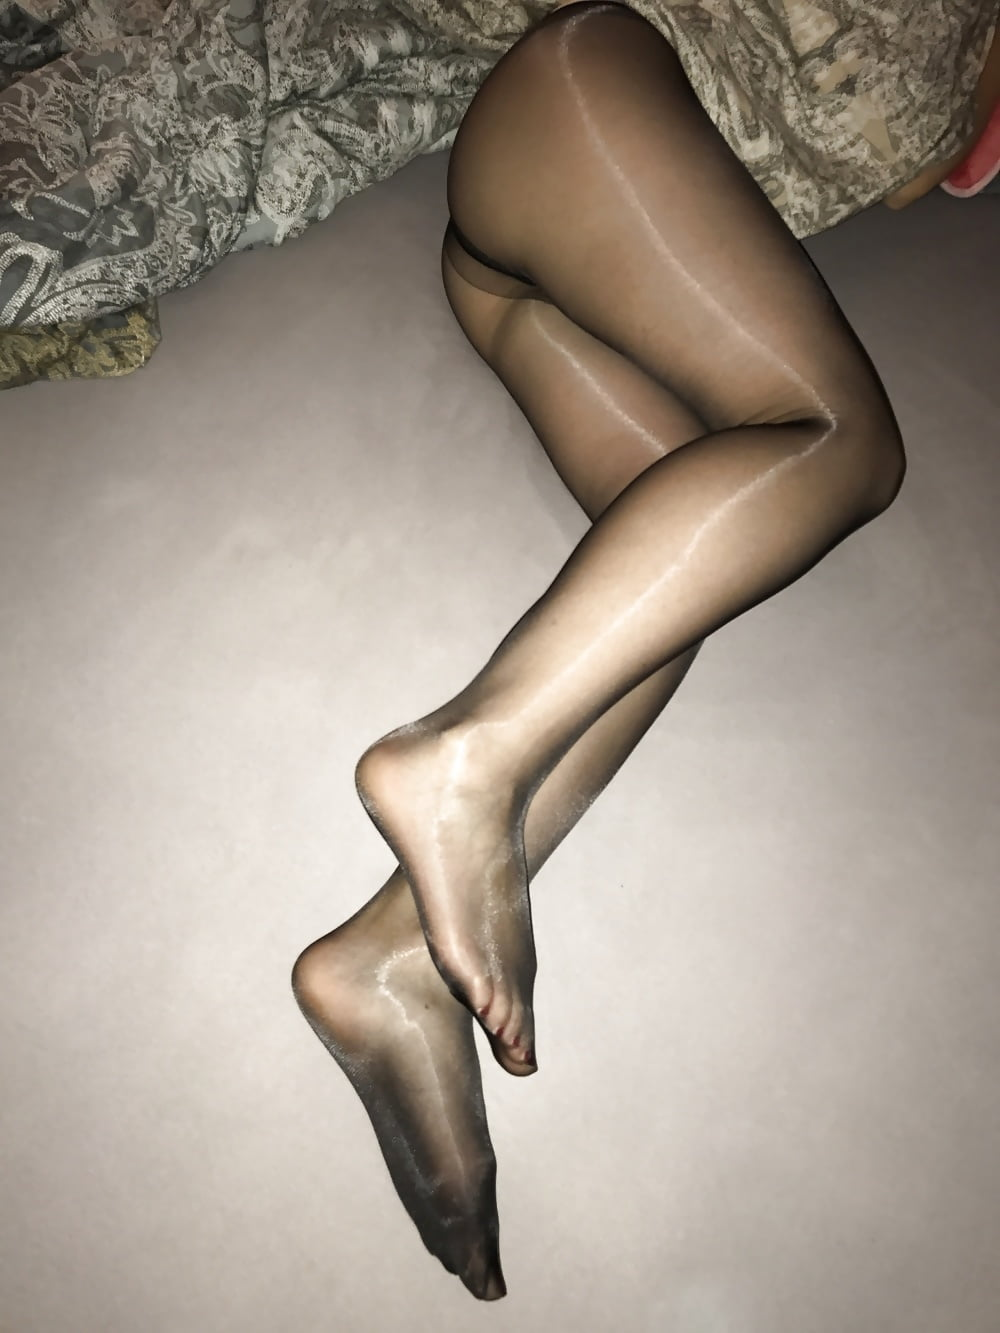 Pantyhose why nylon, not sing in porn videos